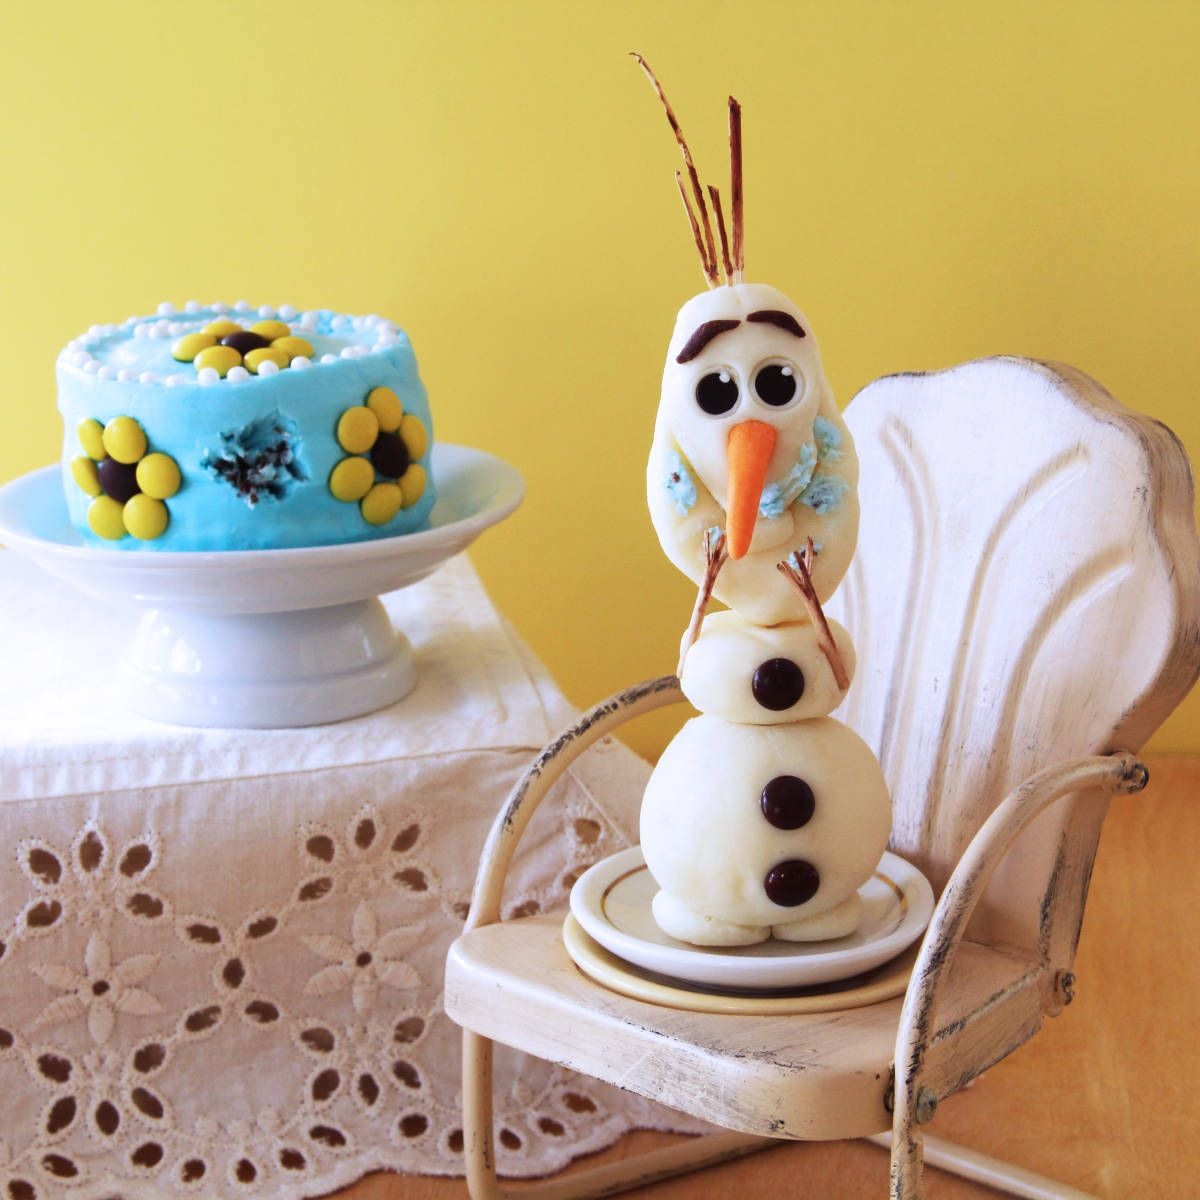 Olaf's Frozen Fever Treat